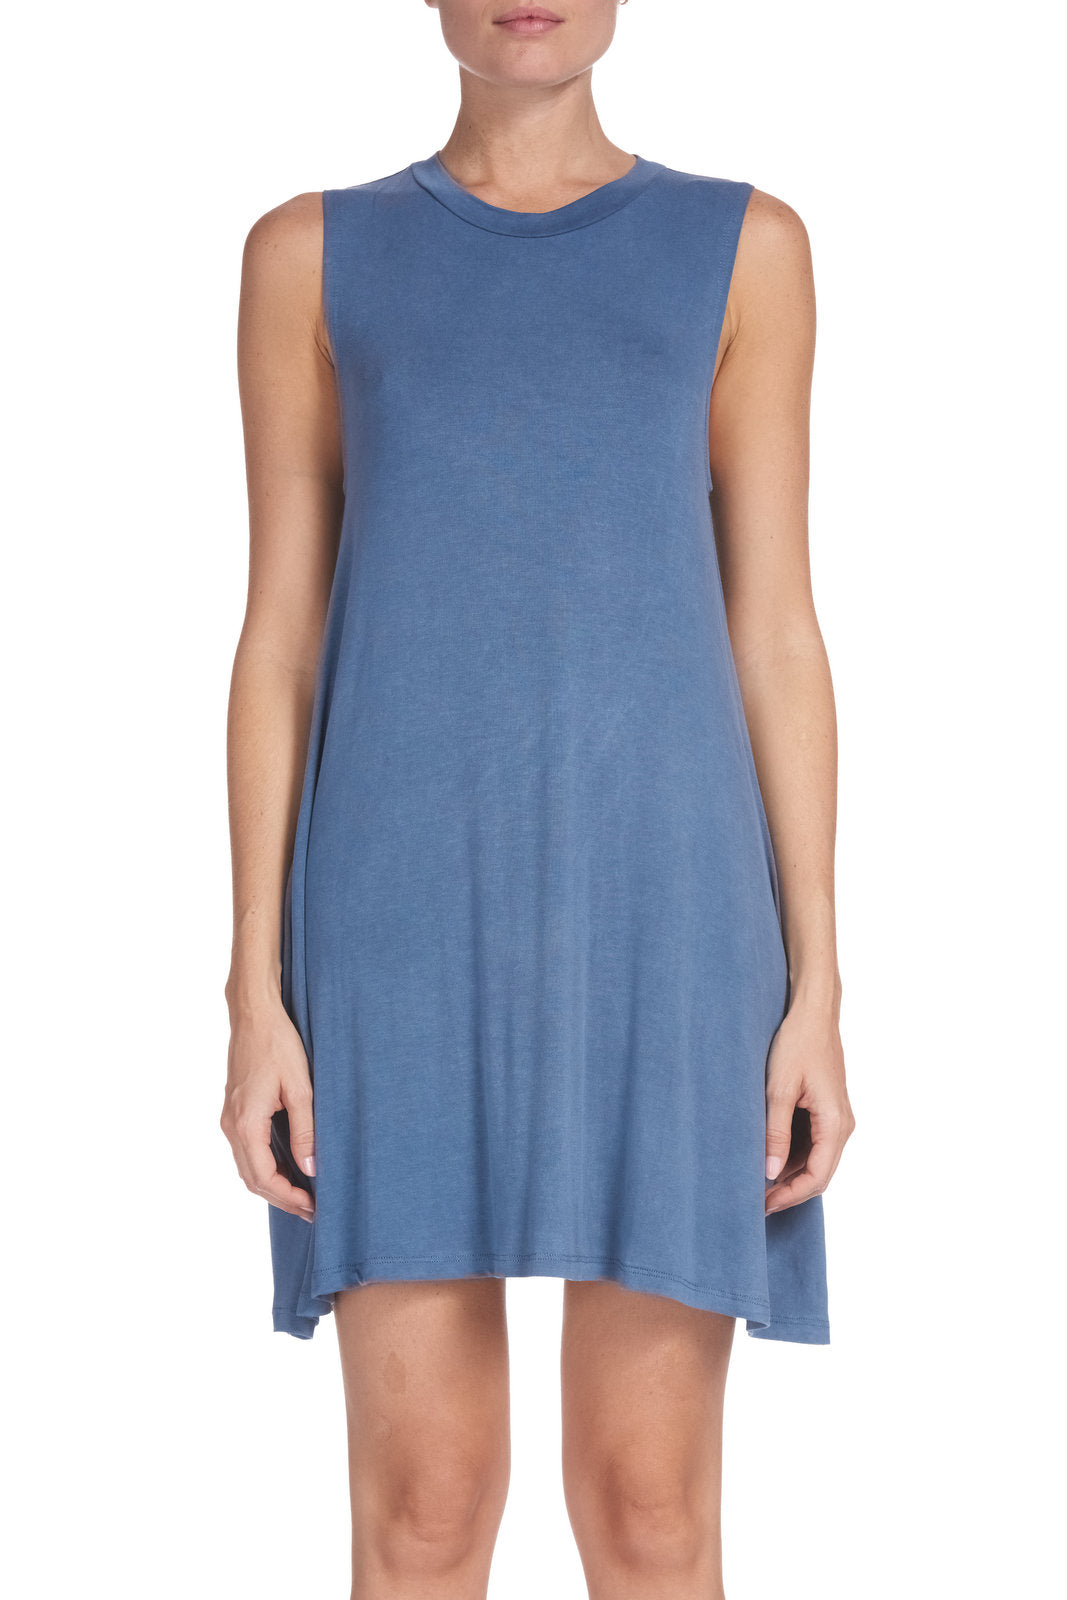 Blue Sleeveless Dress with Pockets